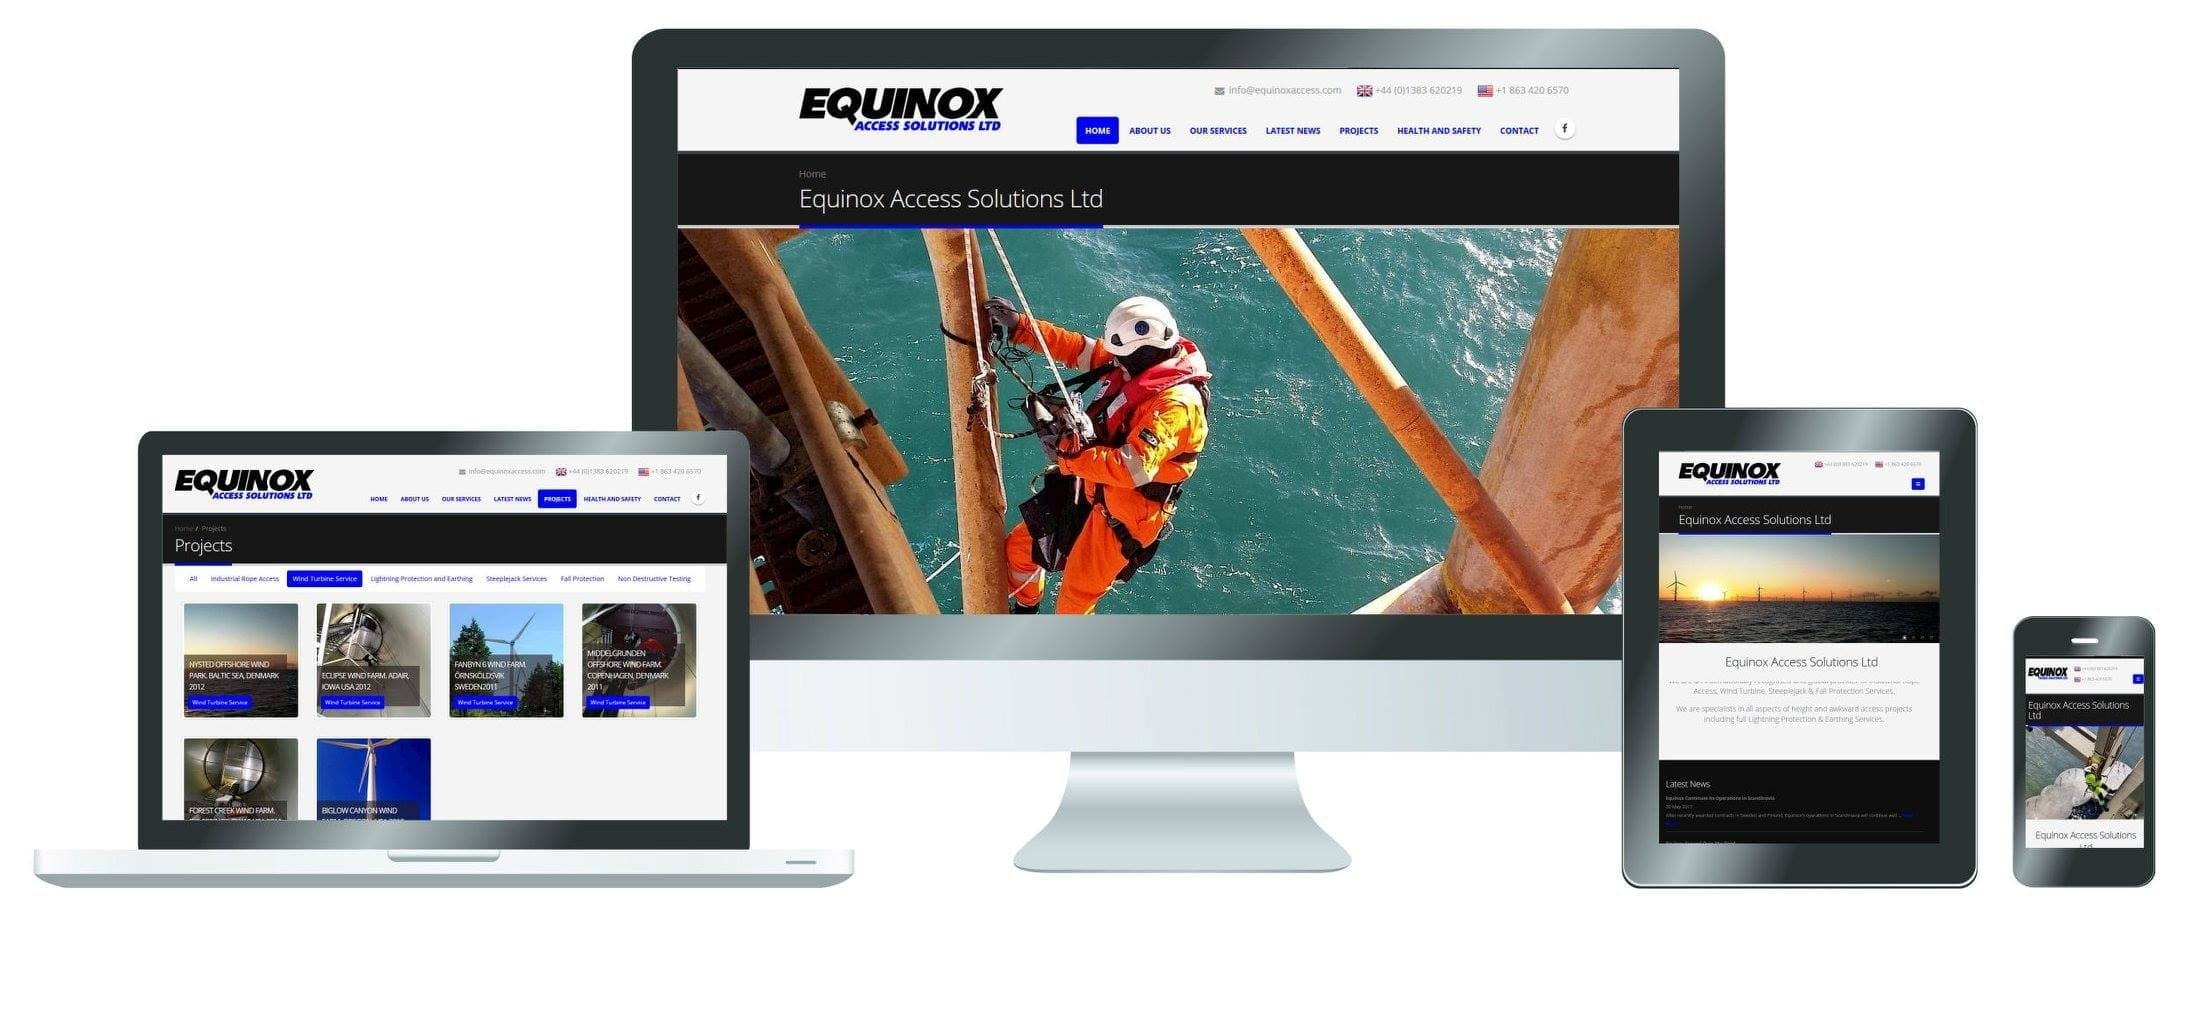 Equinox Access Solutions